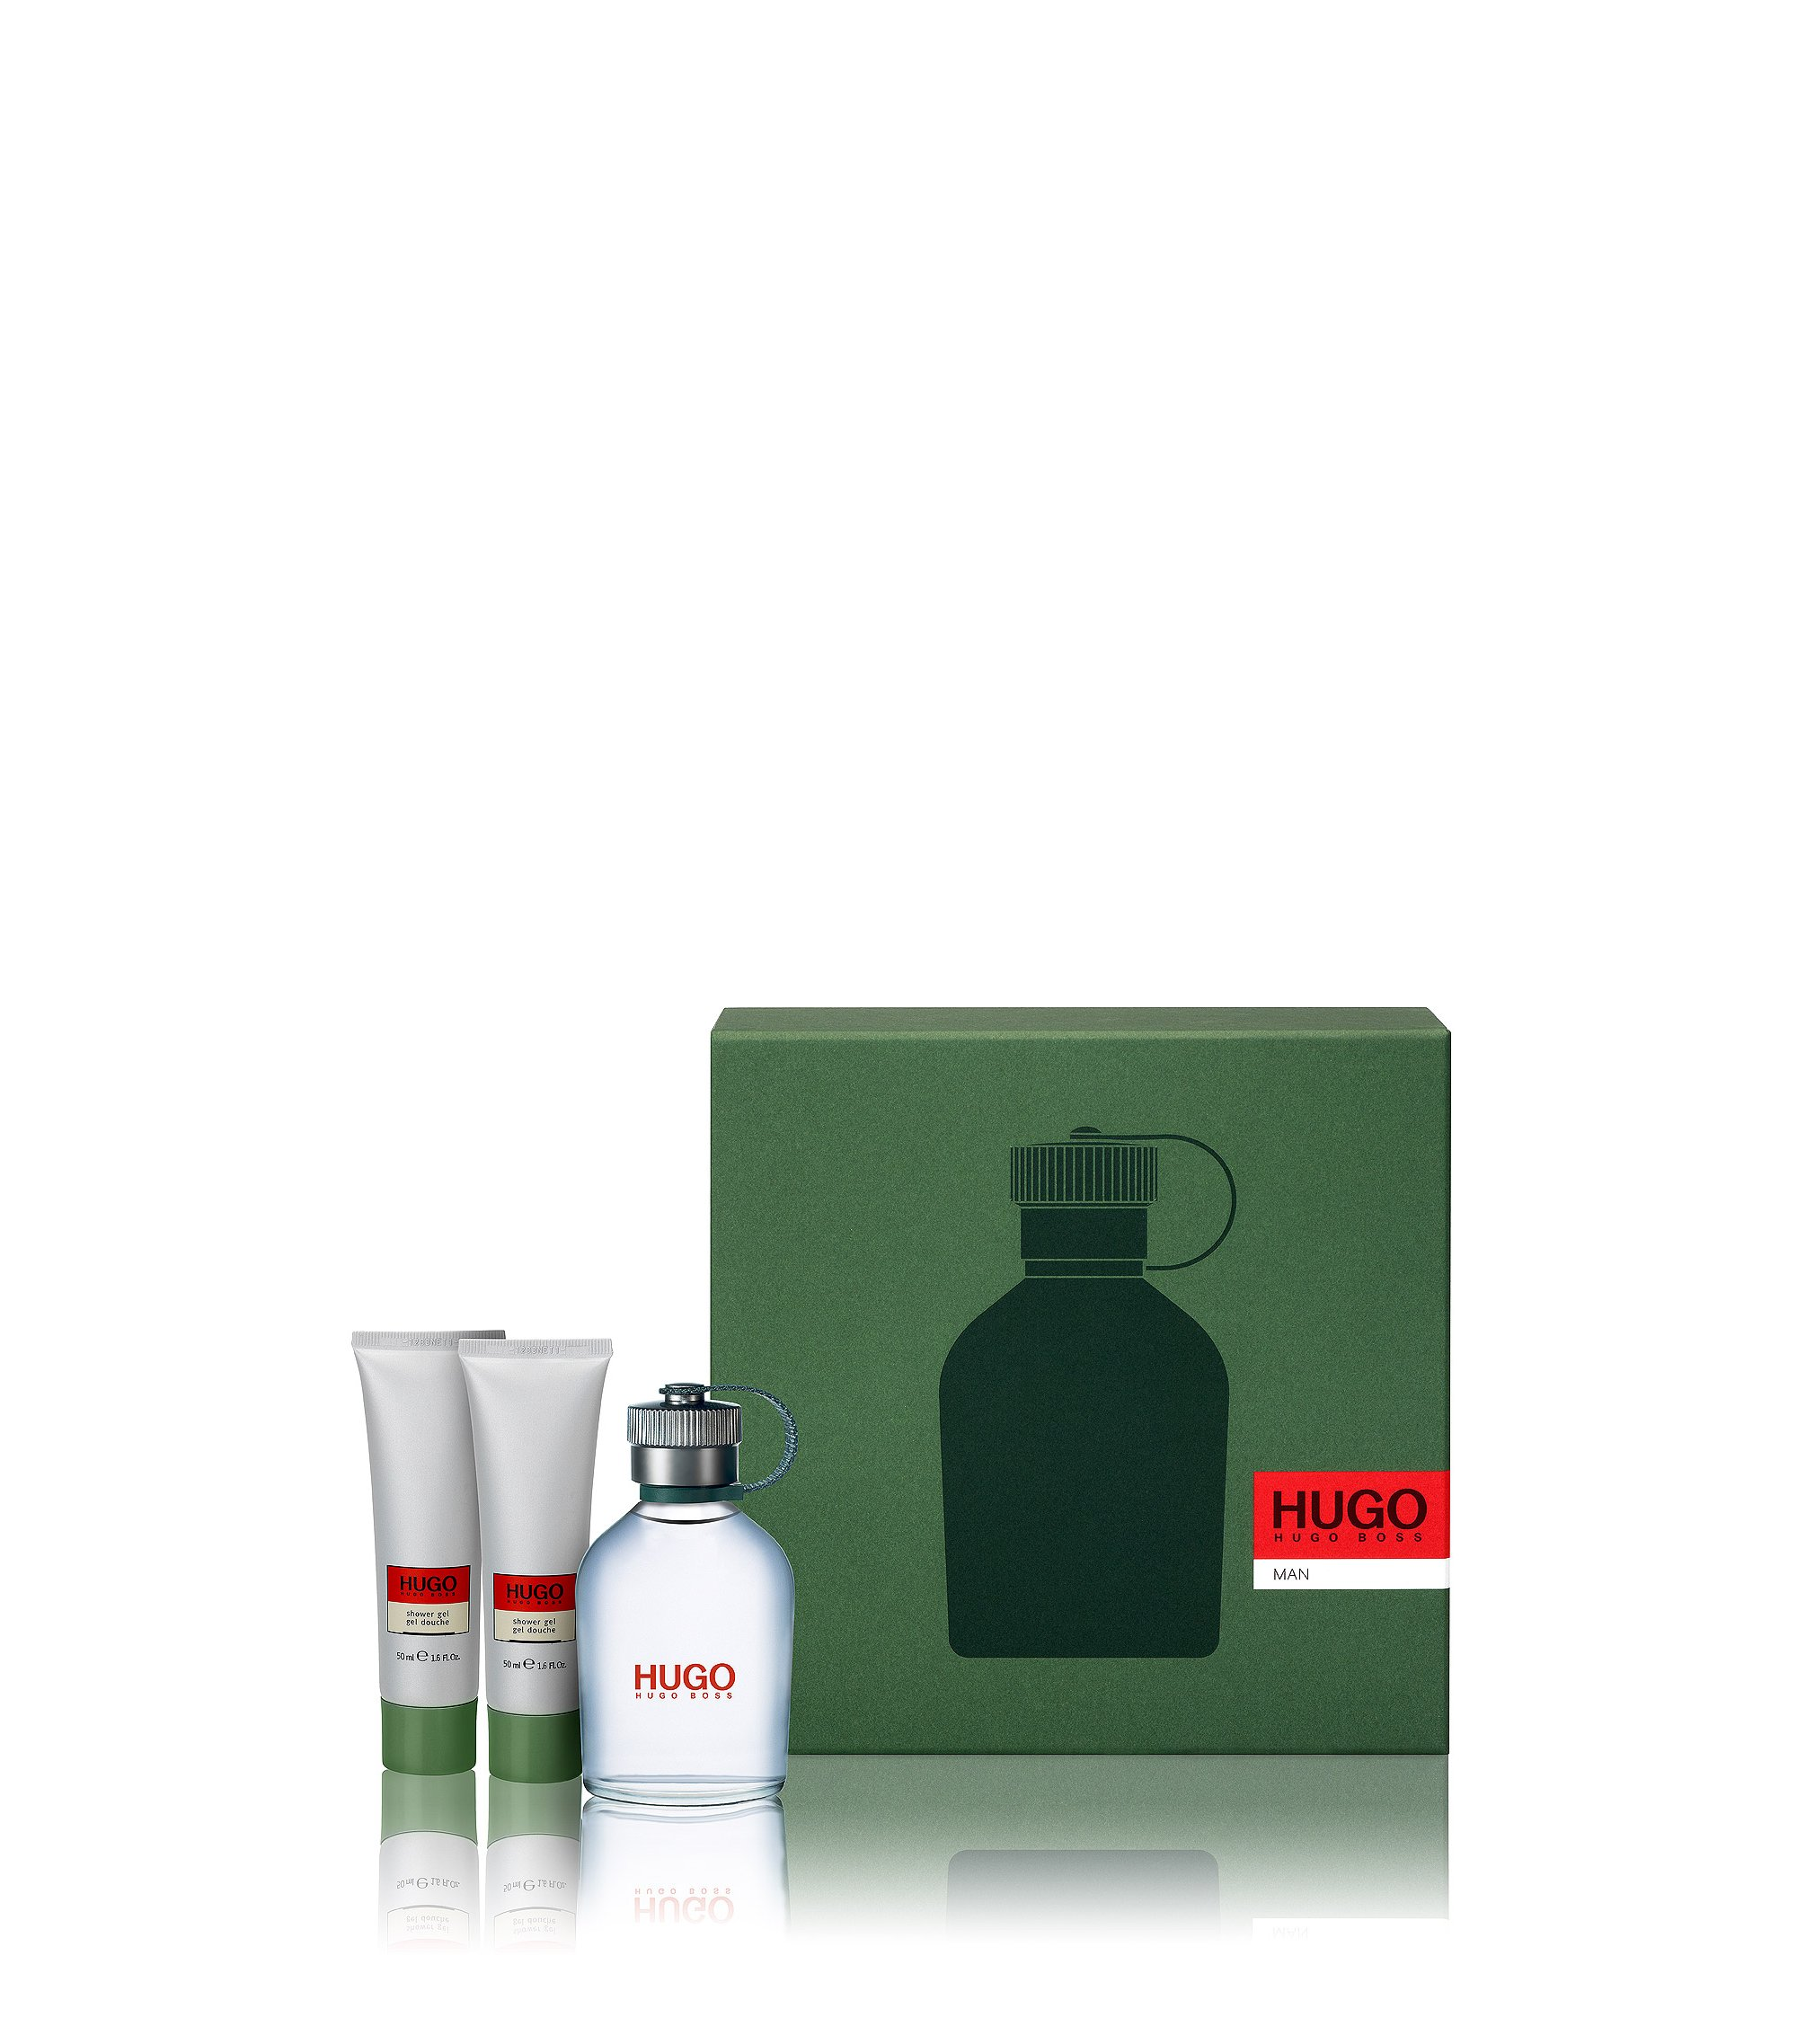 Cadeauset 'HUGO Man' met eau de toilette 100 ml en douchegel, Assorted-Pre-Pack